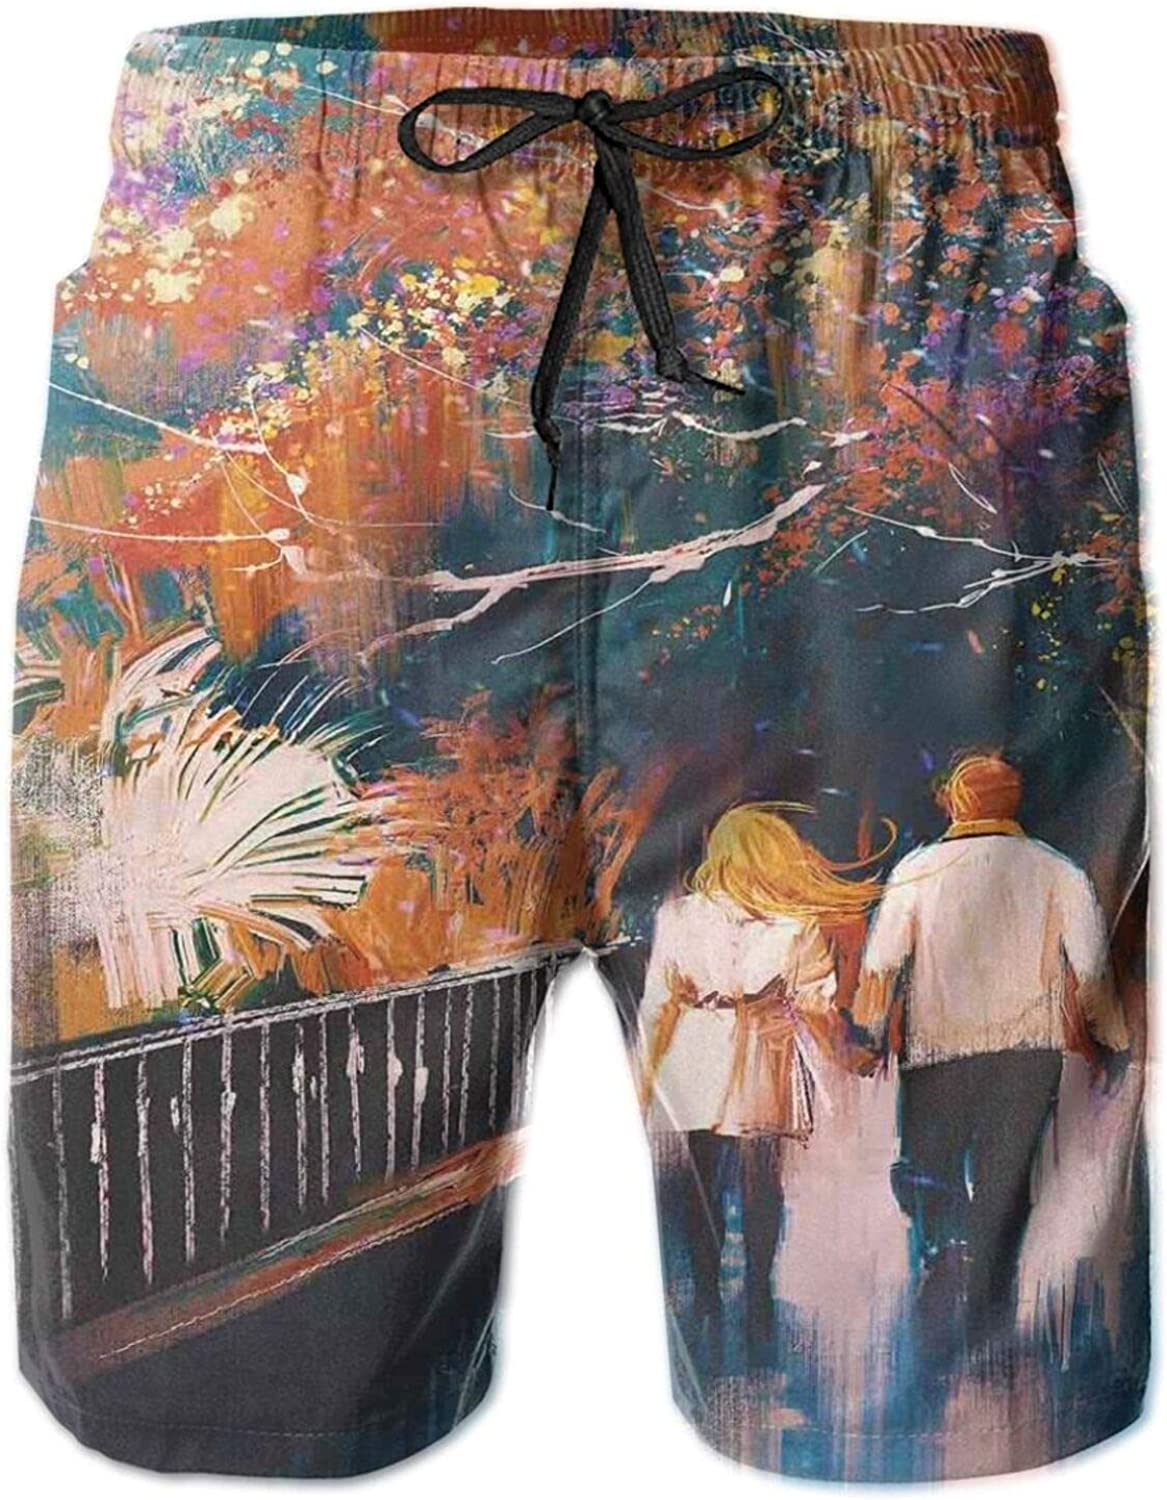 A Lover Couple Walking and Holding Hands Among with Browning Trees in Autumn Park Mens Swim Shorts Casual Workout Short Pants Drawstring Beach Shorts,L